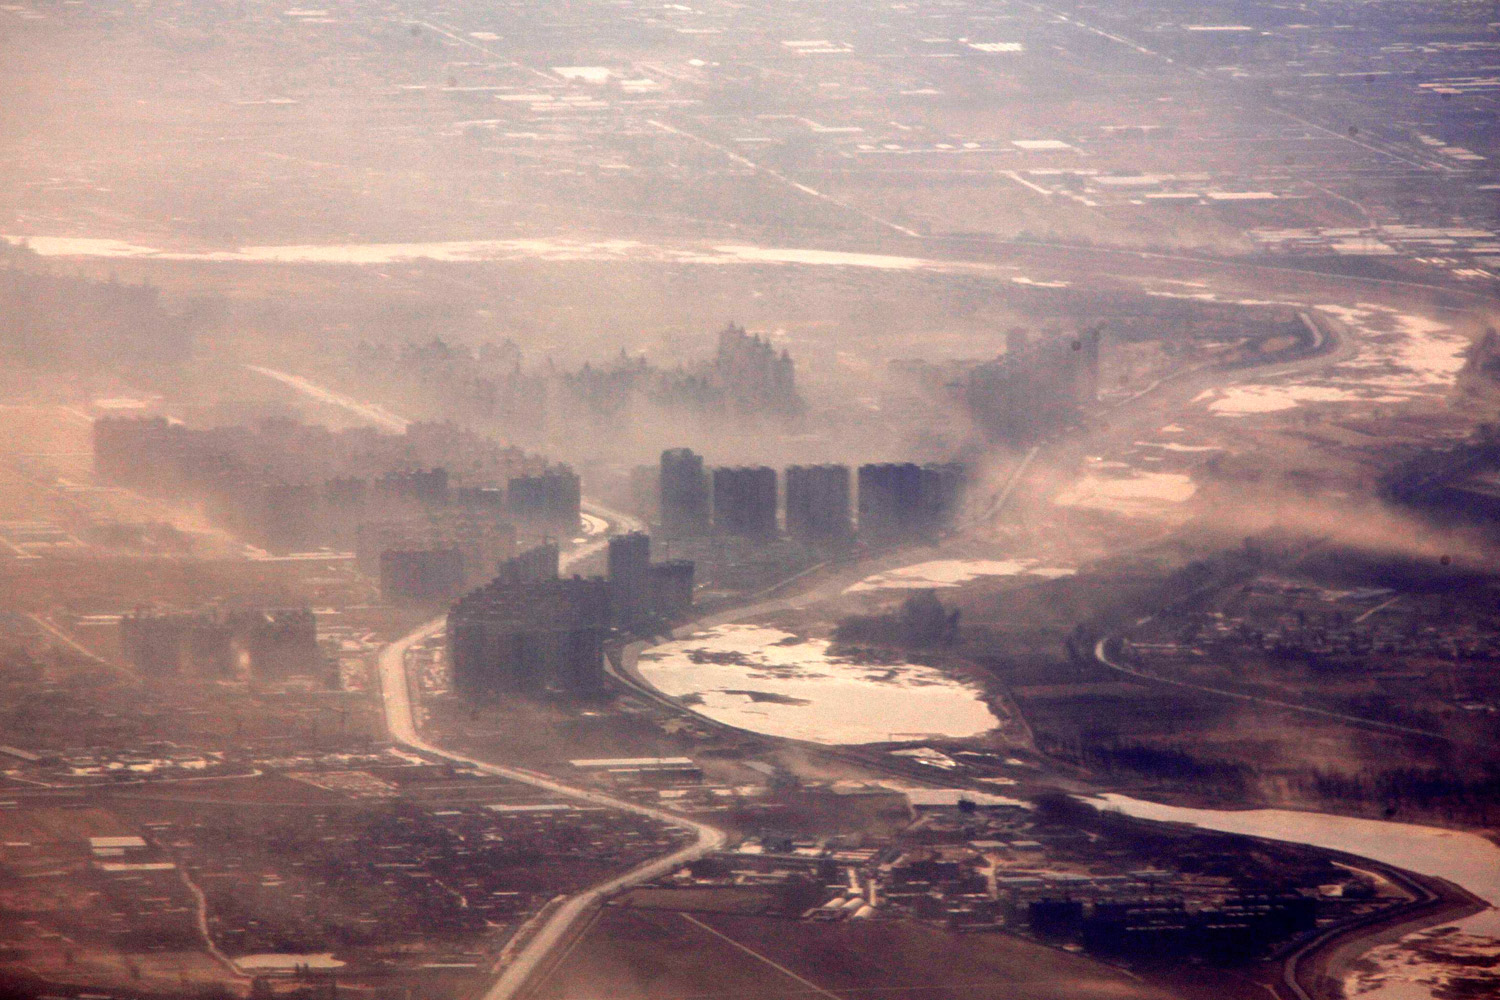 February 6, 2012. Strong winds blow dust over buildings located on the outskirts of Beijing.